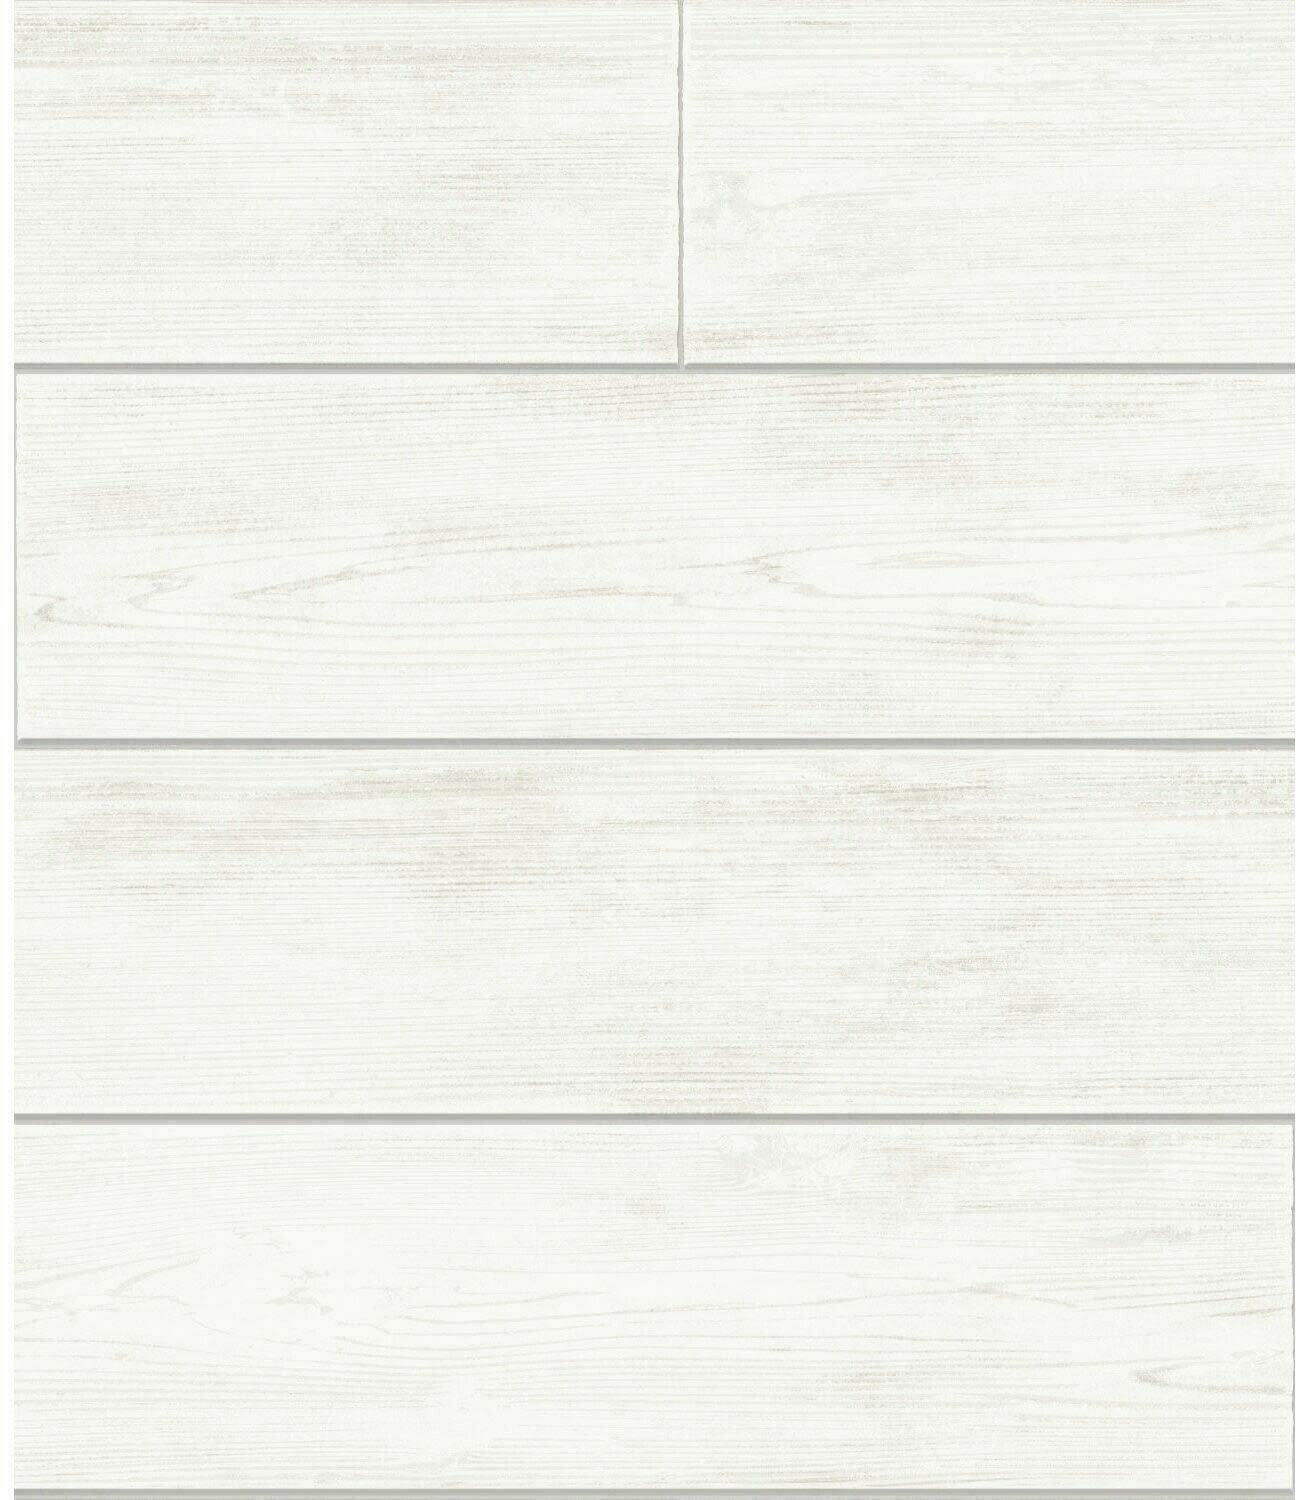 Magnolia Home Joanna Gaines Off White Shiplap Wood On Sure Strip Wallp All 4 Walls Wallpaper,Modern Masculine Color Palette